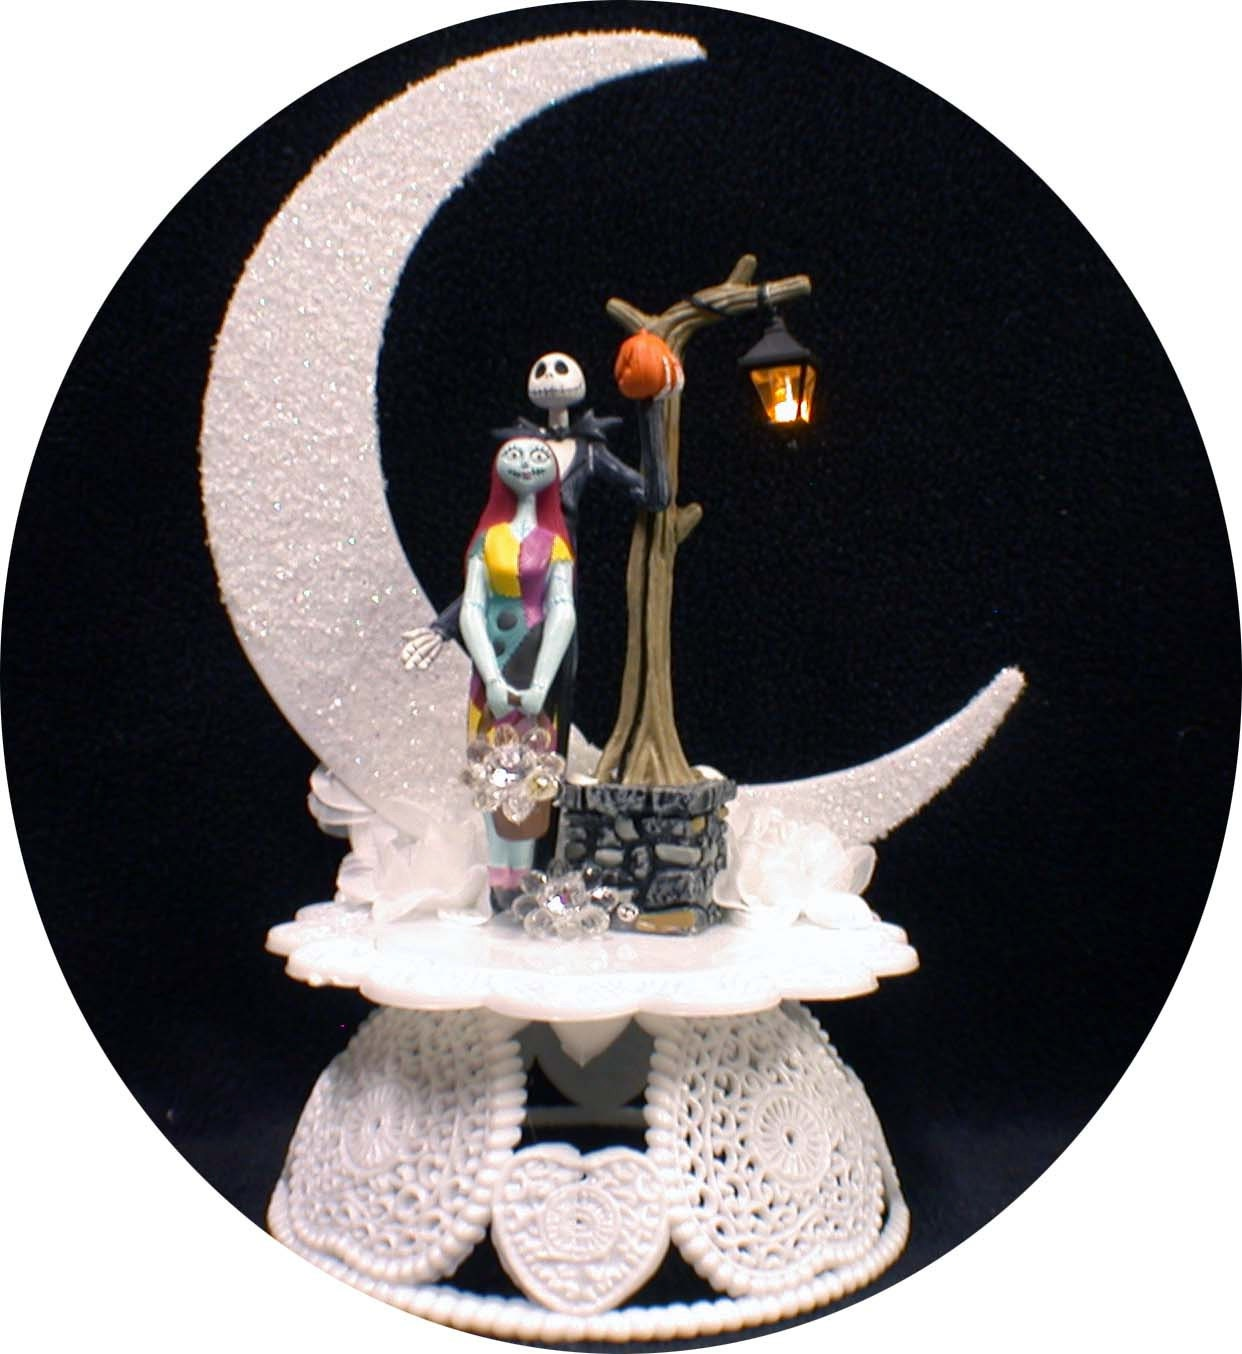 Harley Davidson Cake Decorations Watch More Like Christmas Wedding Cake Toppers